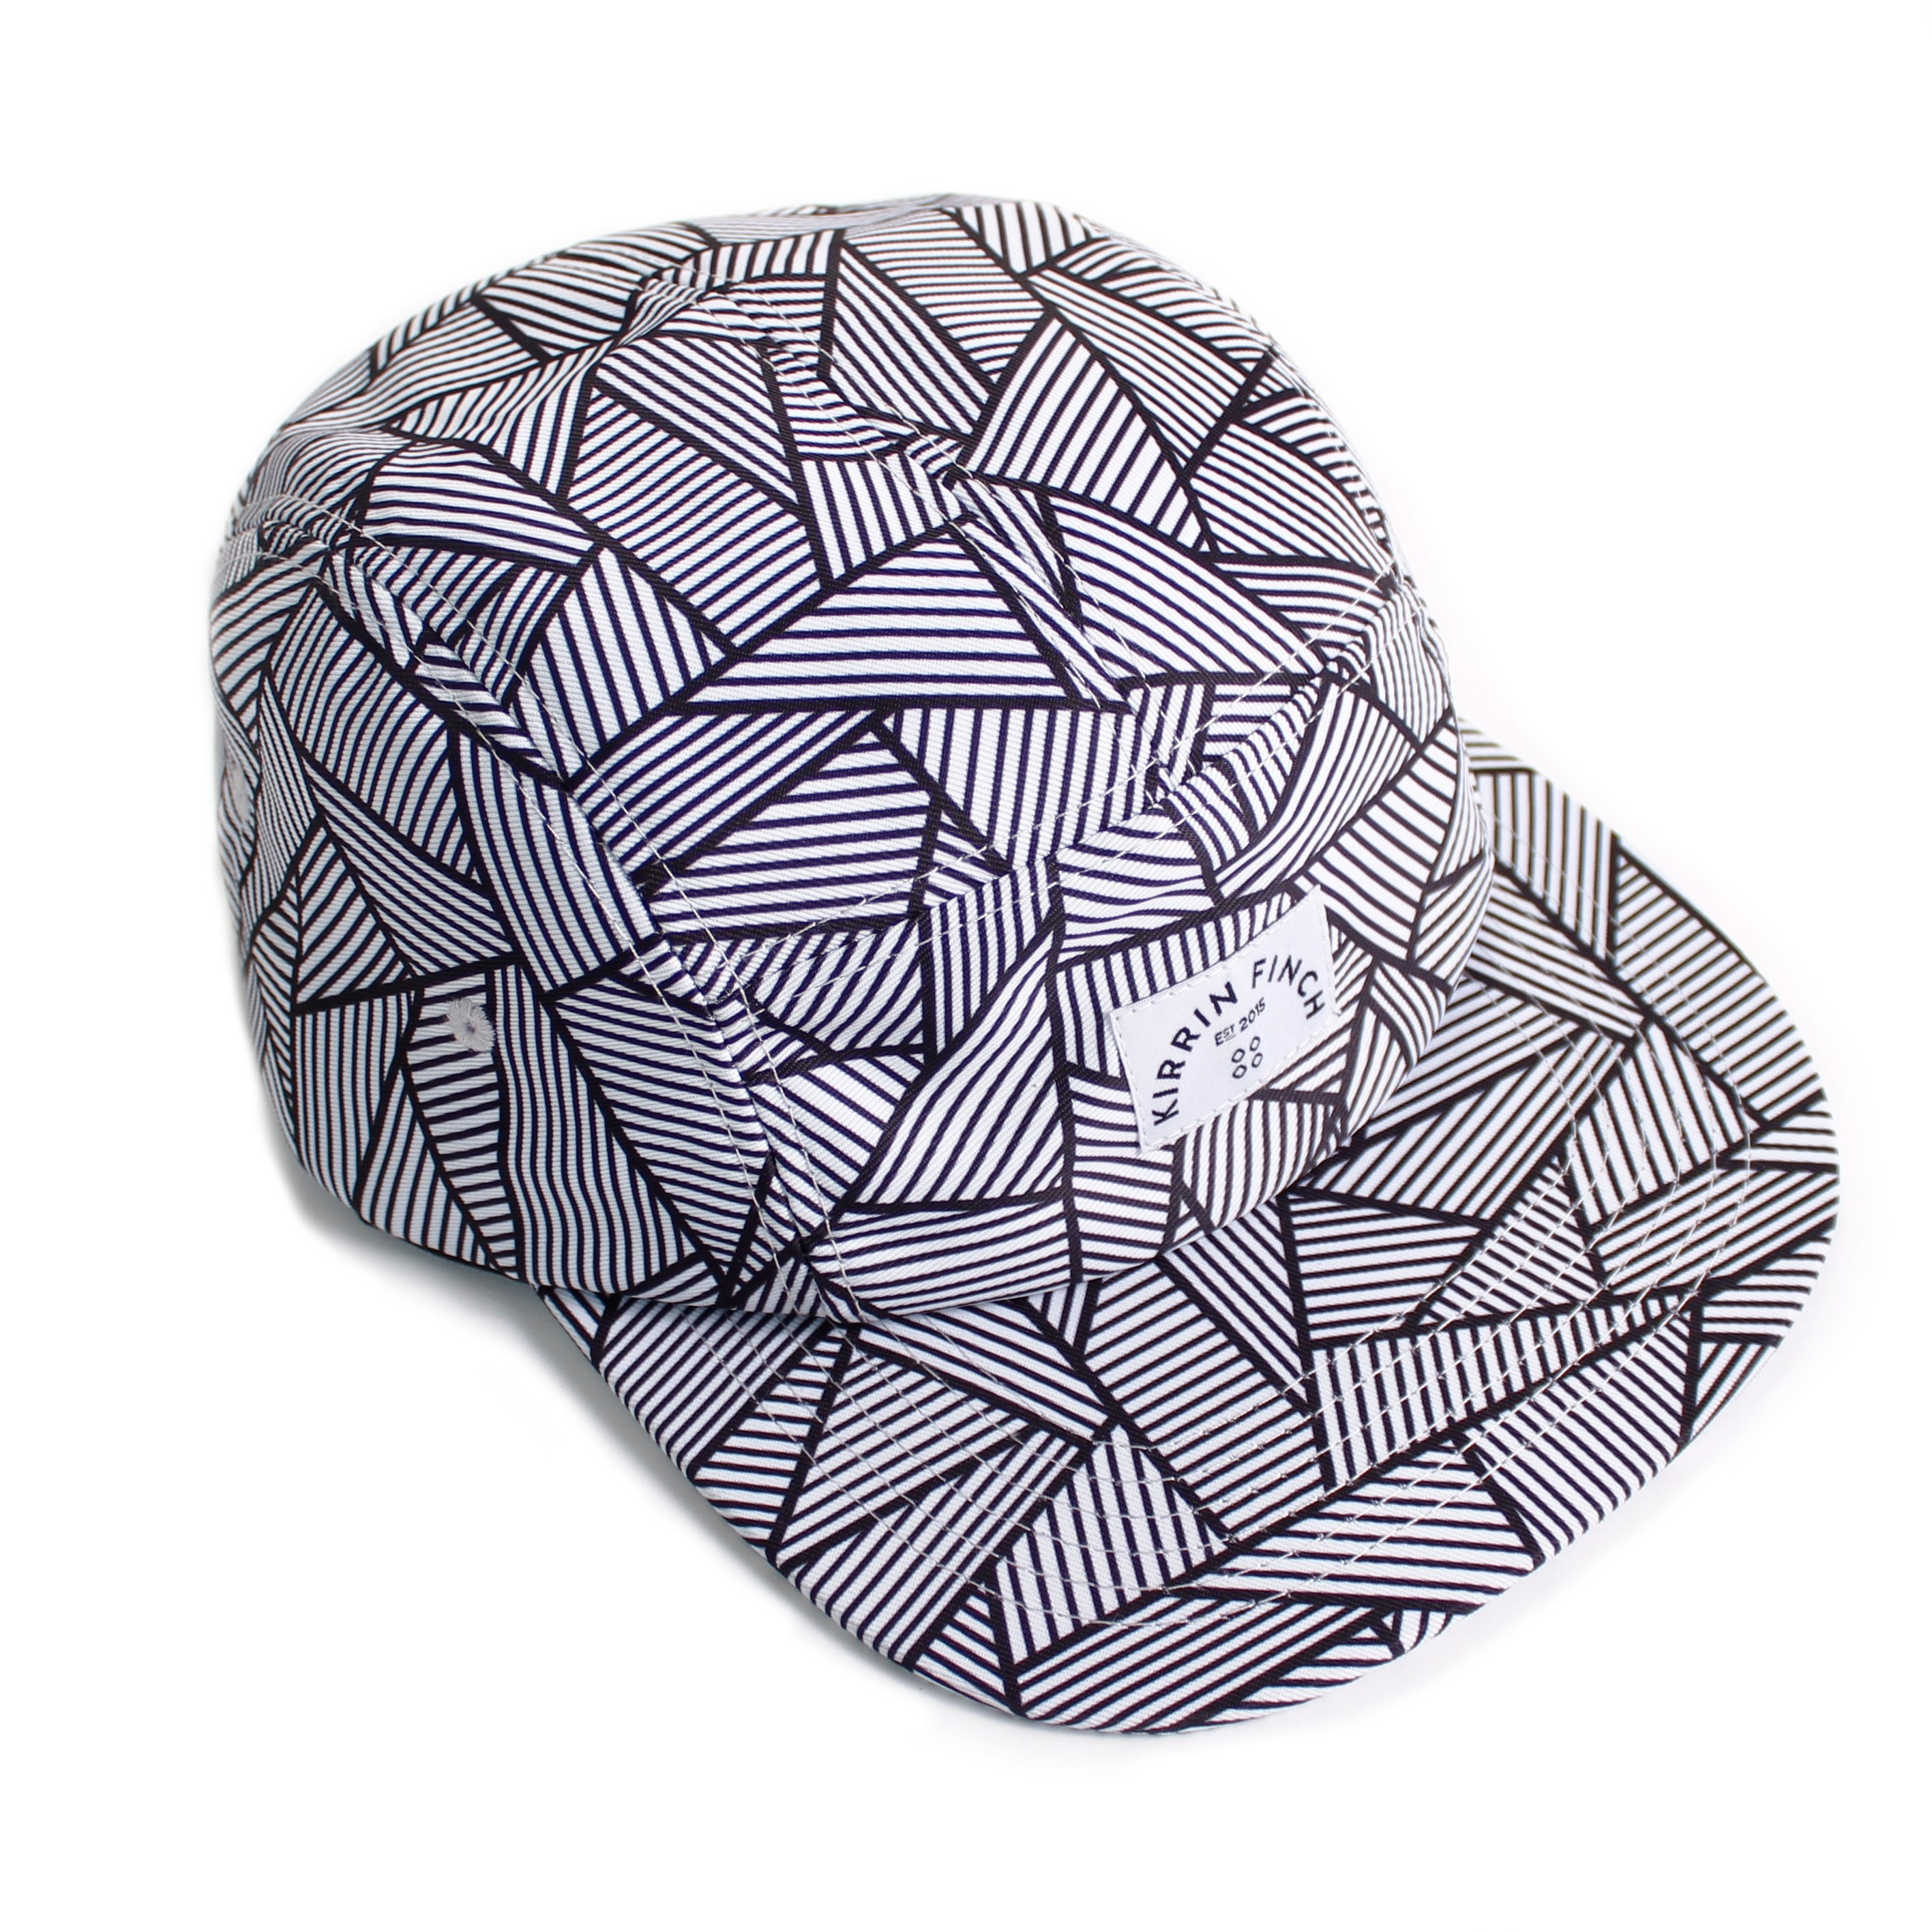 The hat with black and white lines and triangle print with a rectangle in the middle with the brand logo on it